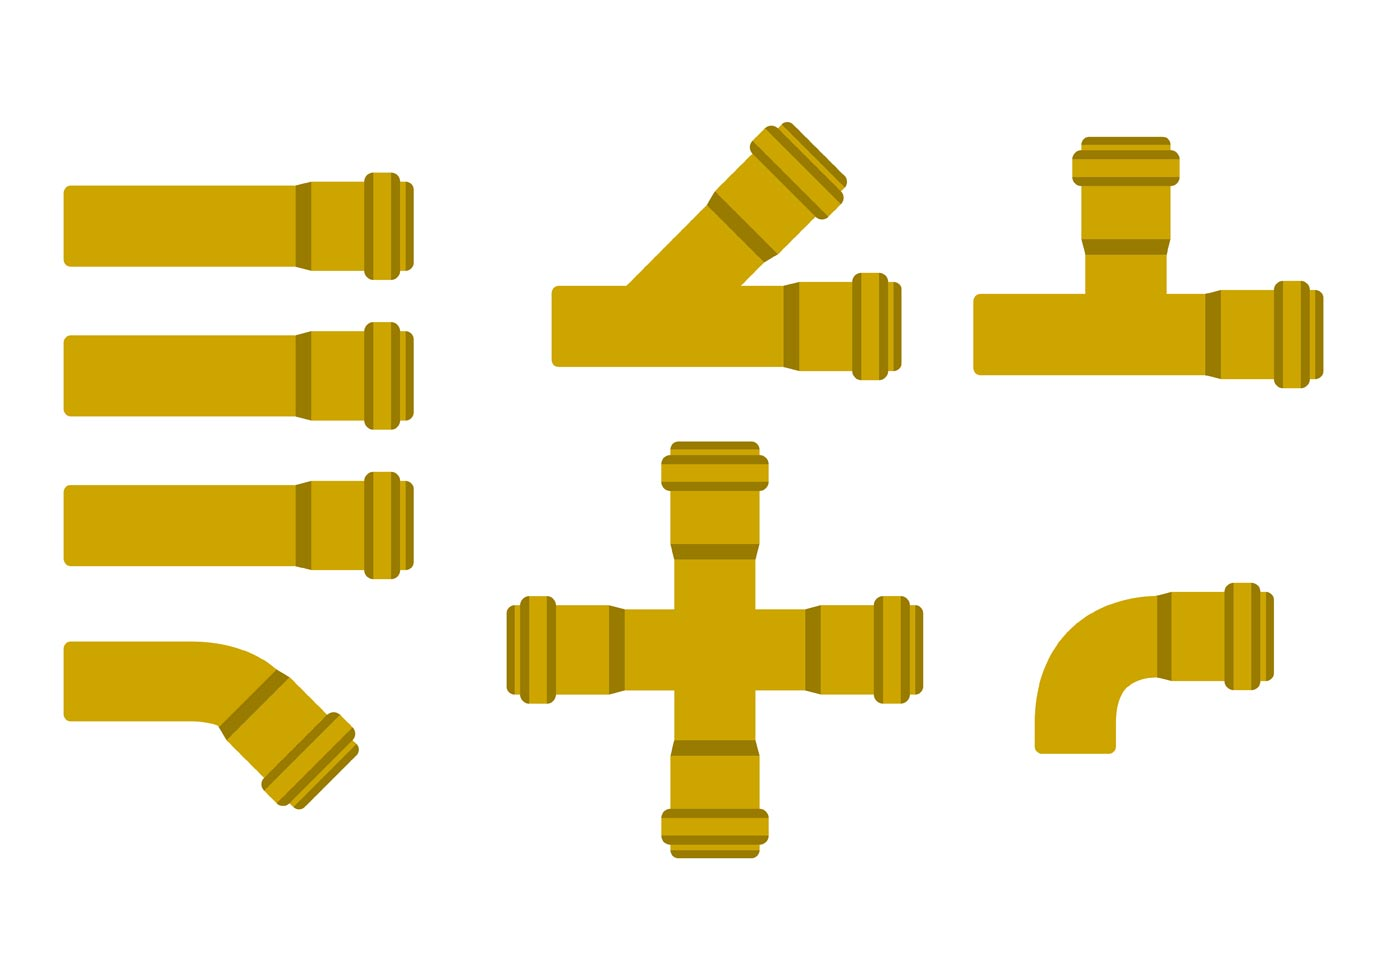 Sewer pipes download free vector art stock graphics for Plumbing sewer pipe